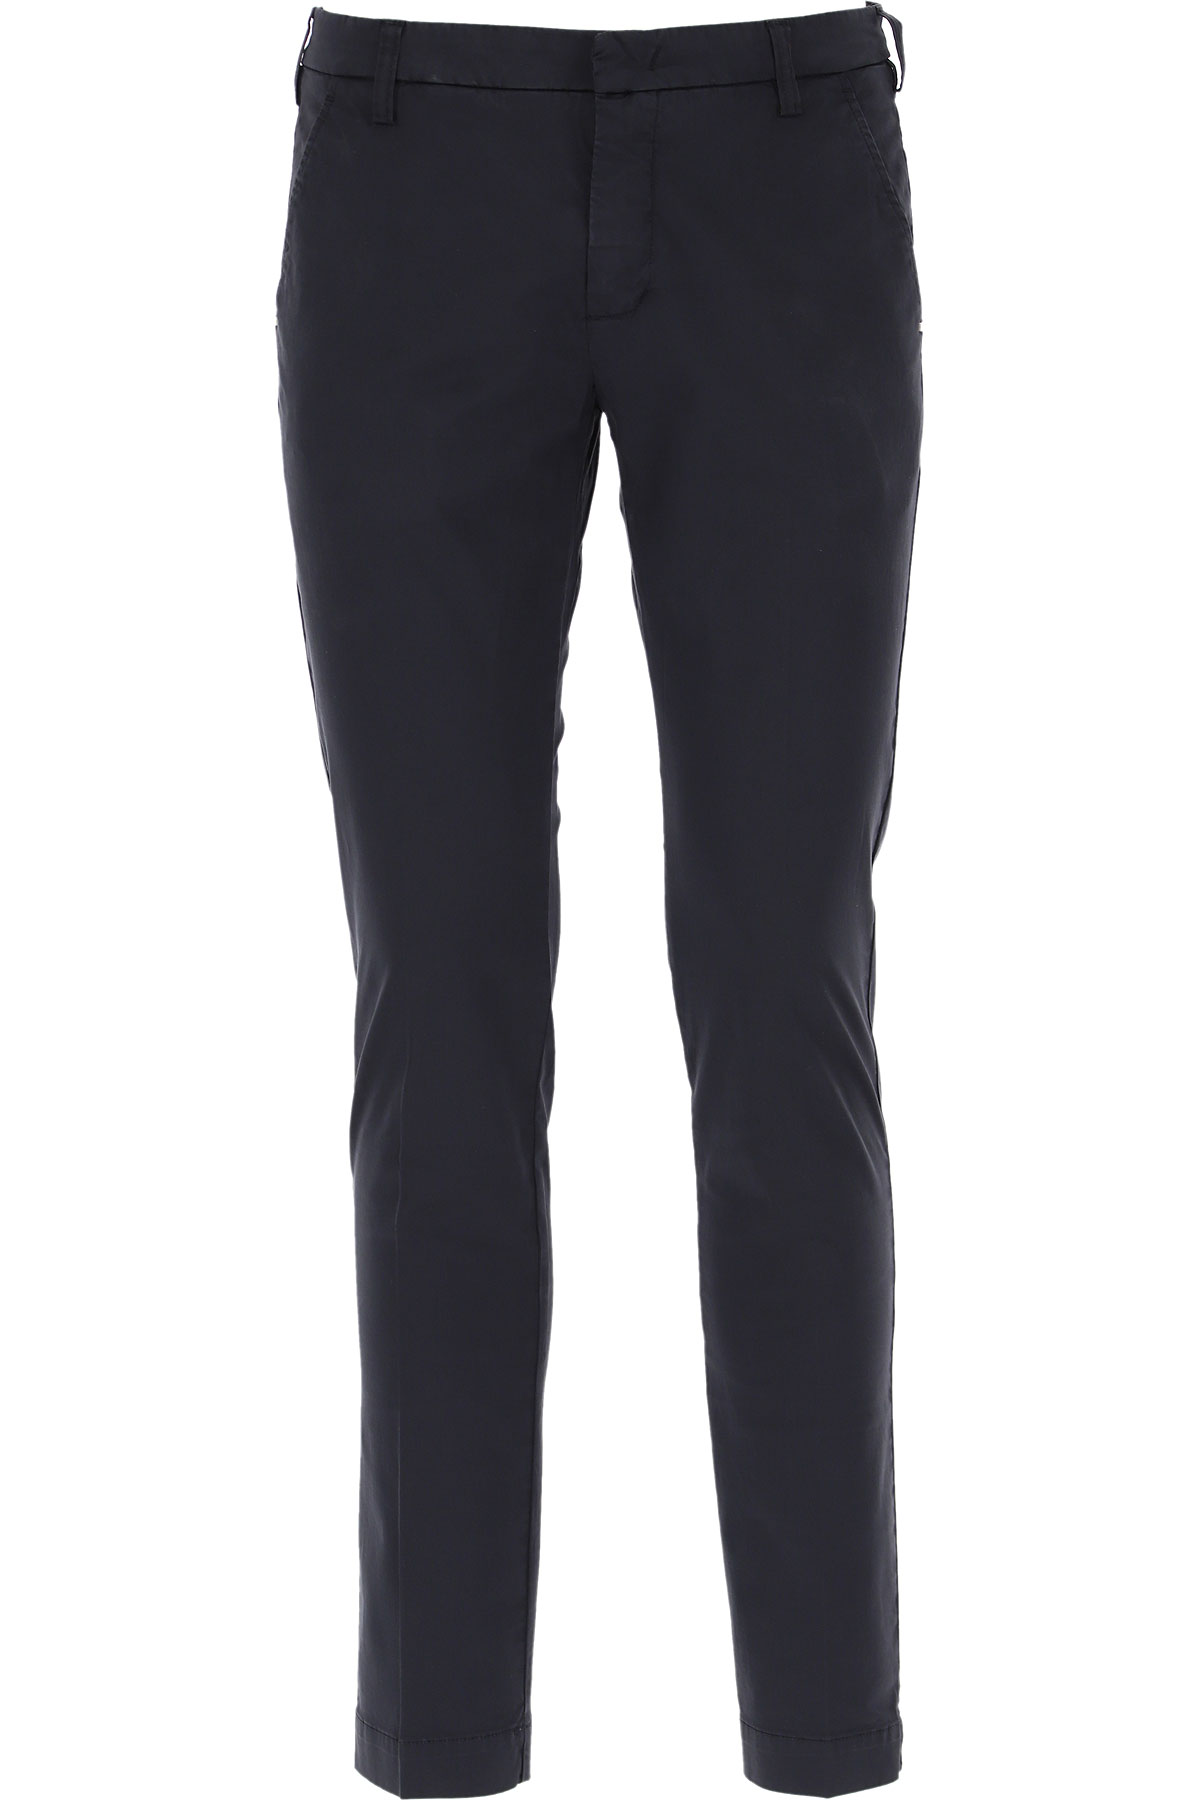 Entre Amis Pants for Men On Sale, Navy Blue, Cotton, 2019, 33 34 35 36